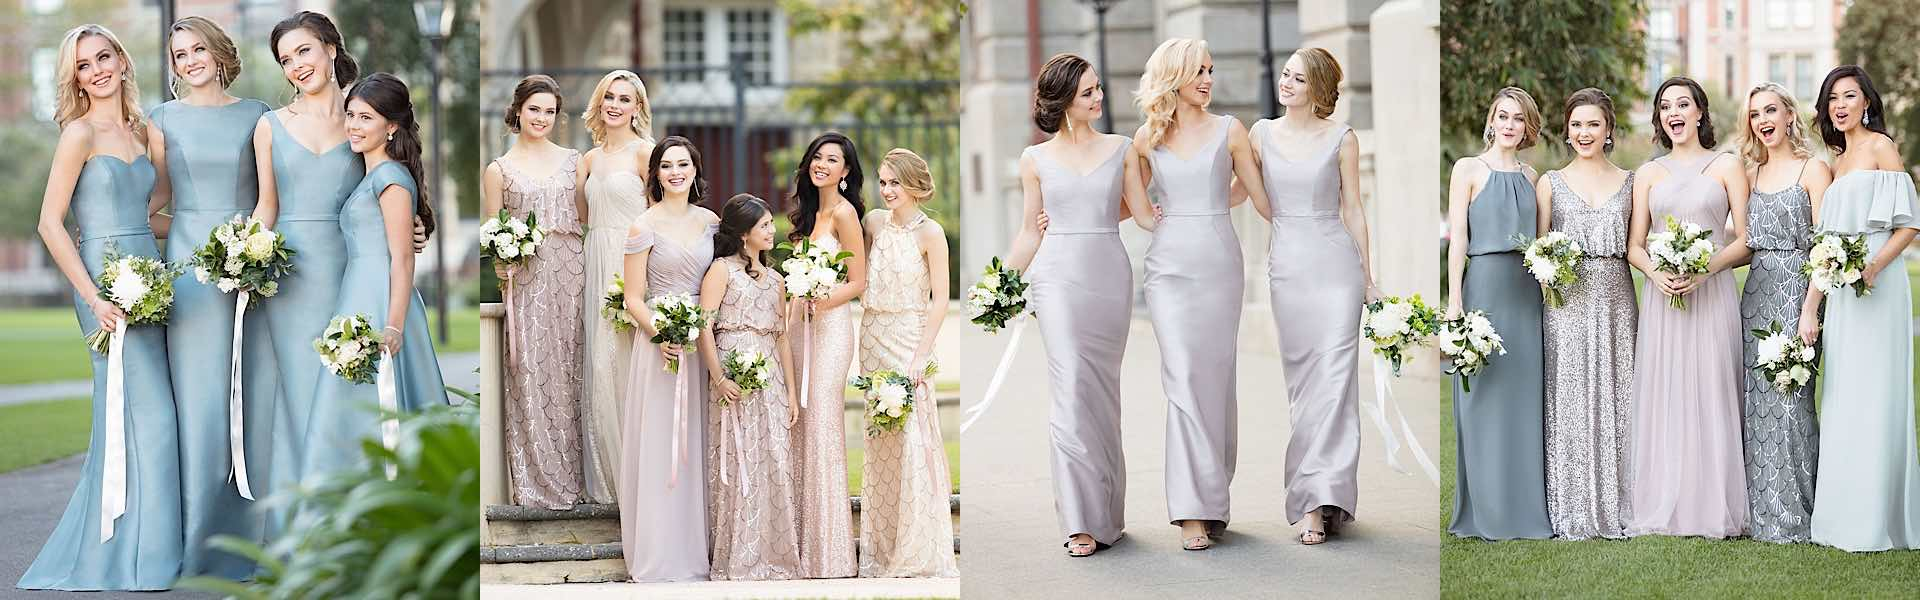 22 Elegant Classy Sorella Vita Bridesmaid Dresses You Can\'t Miss!